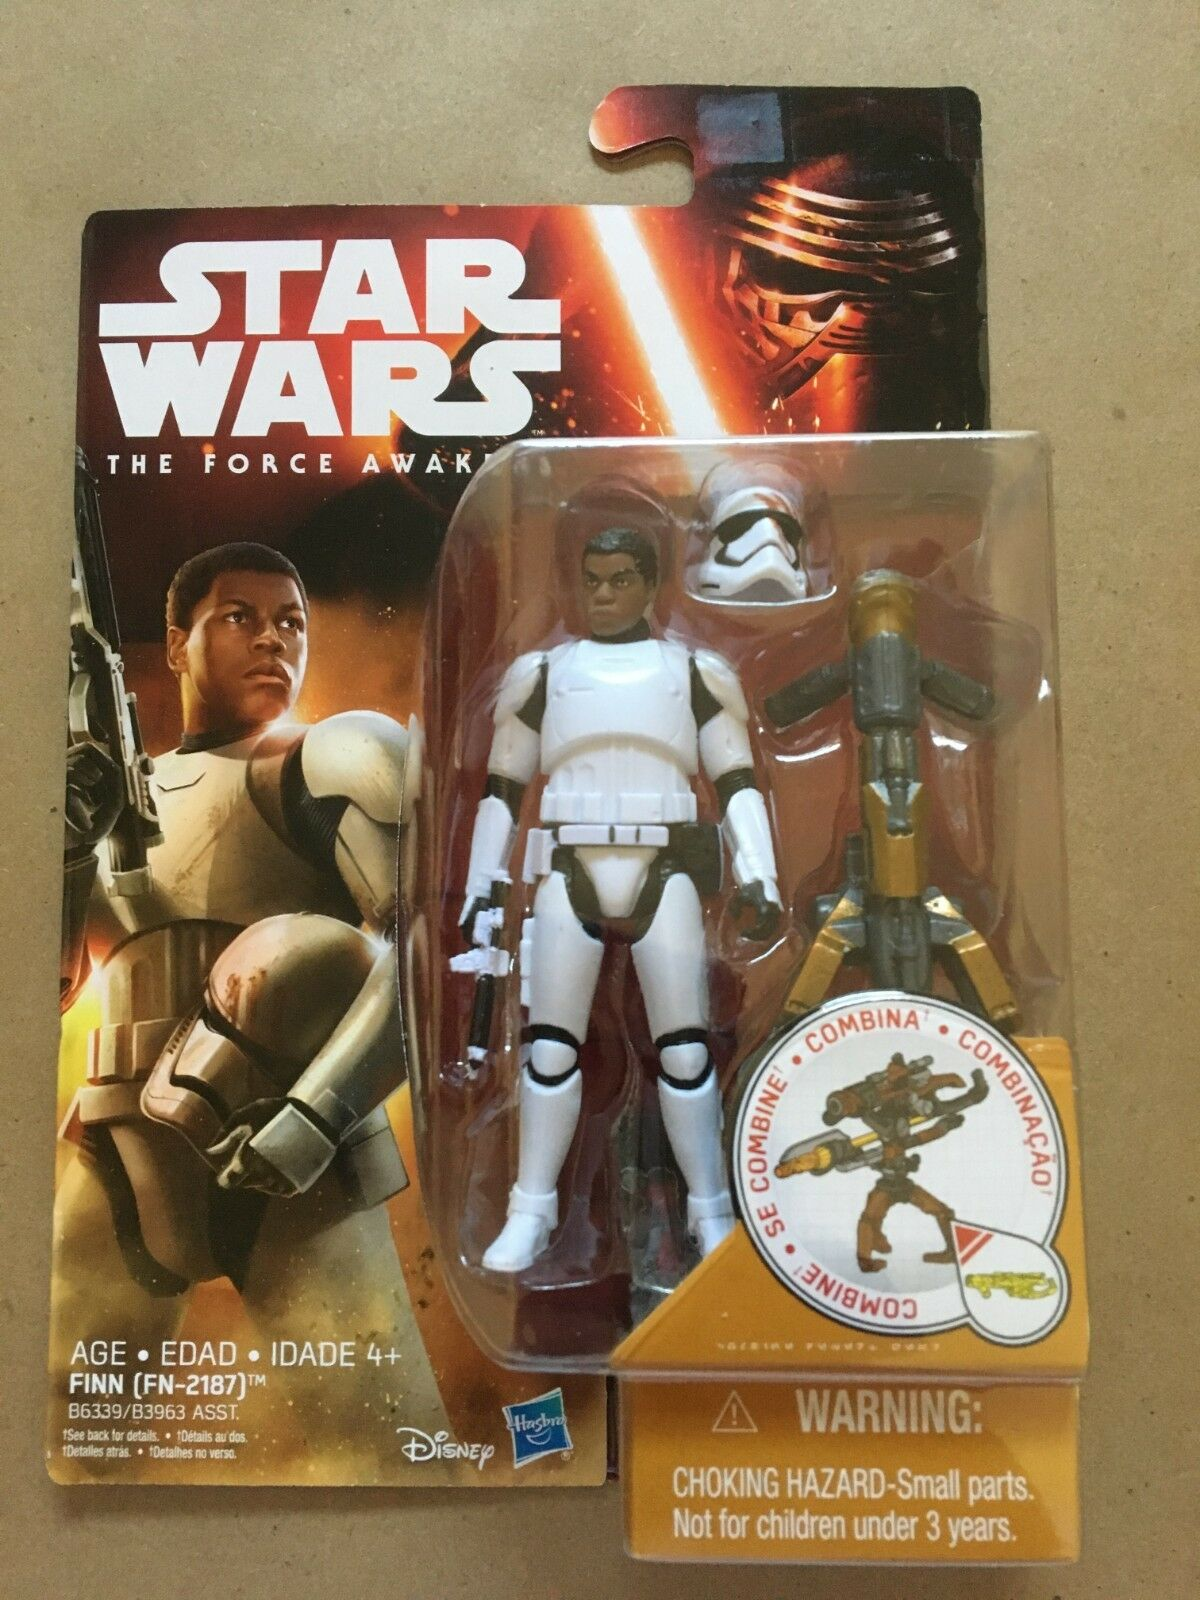 HASBRO Star Wars THE FORCE AWAKENS 3 3 4-Inch Action Figure FINN (FN-2187)